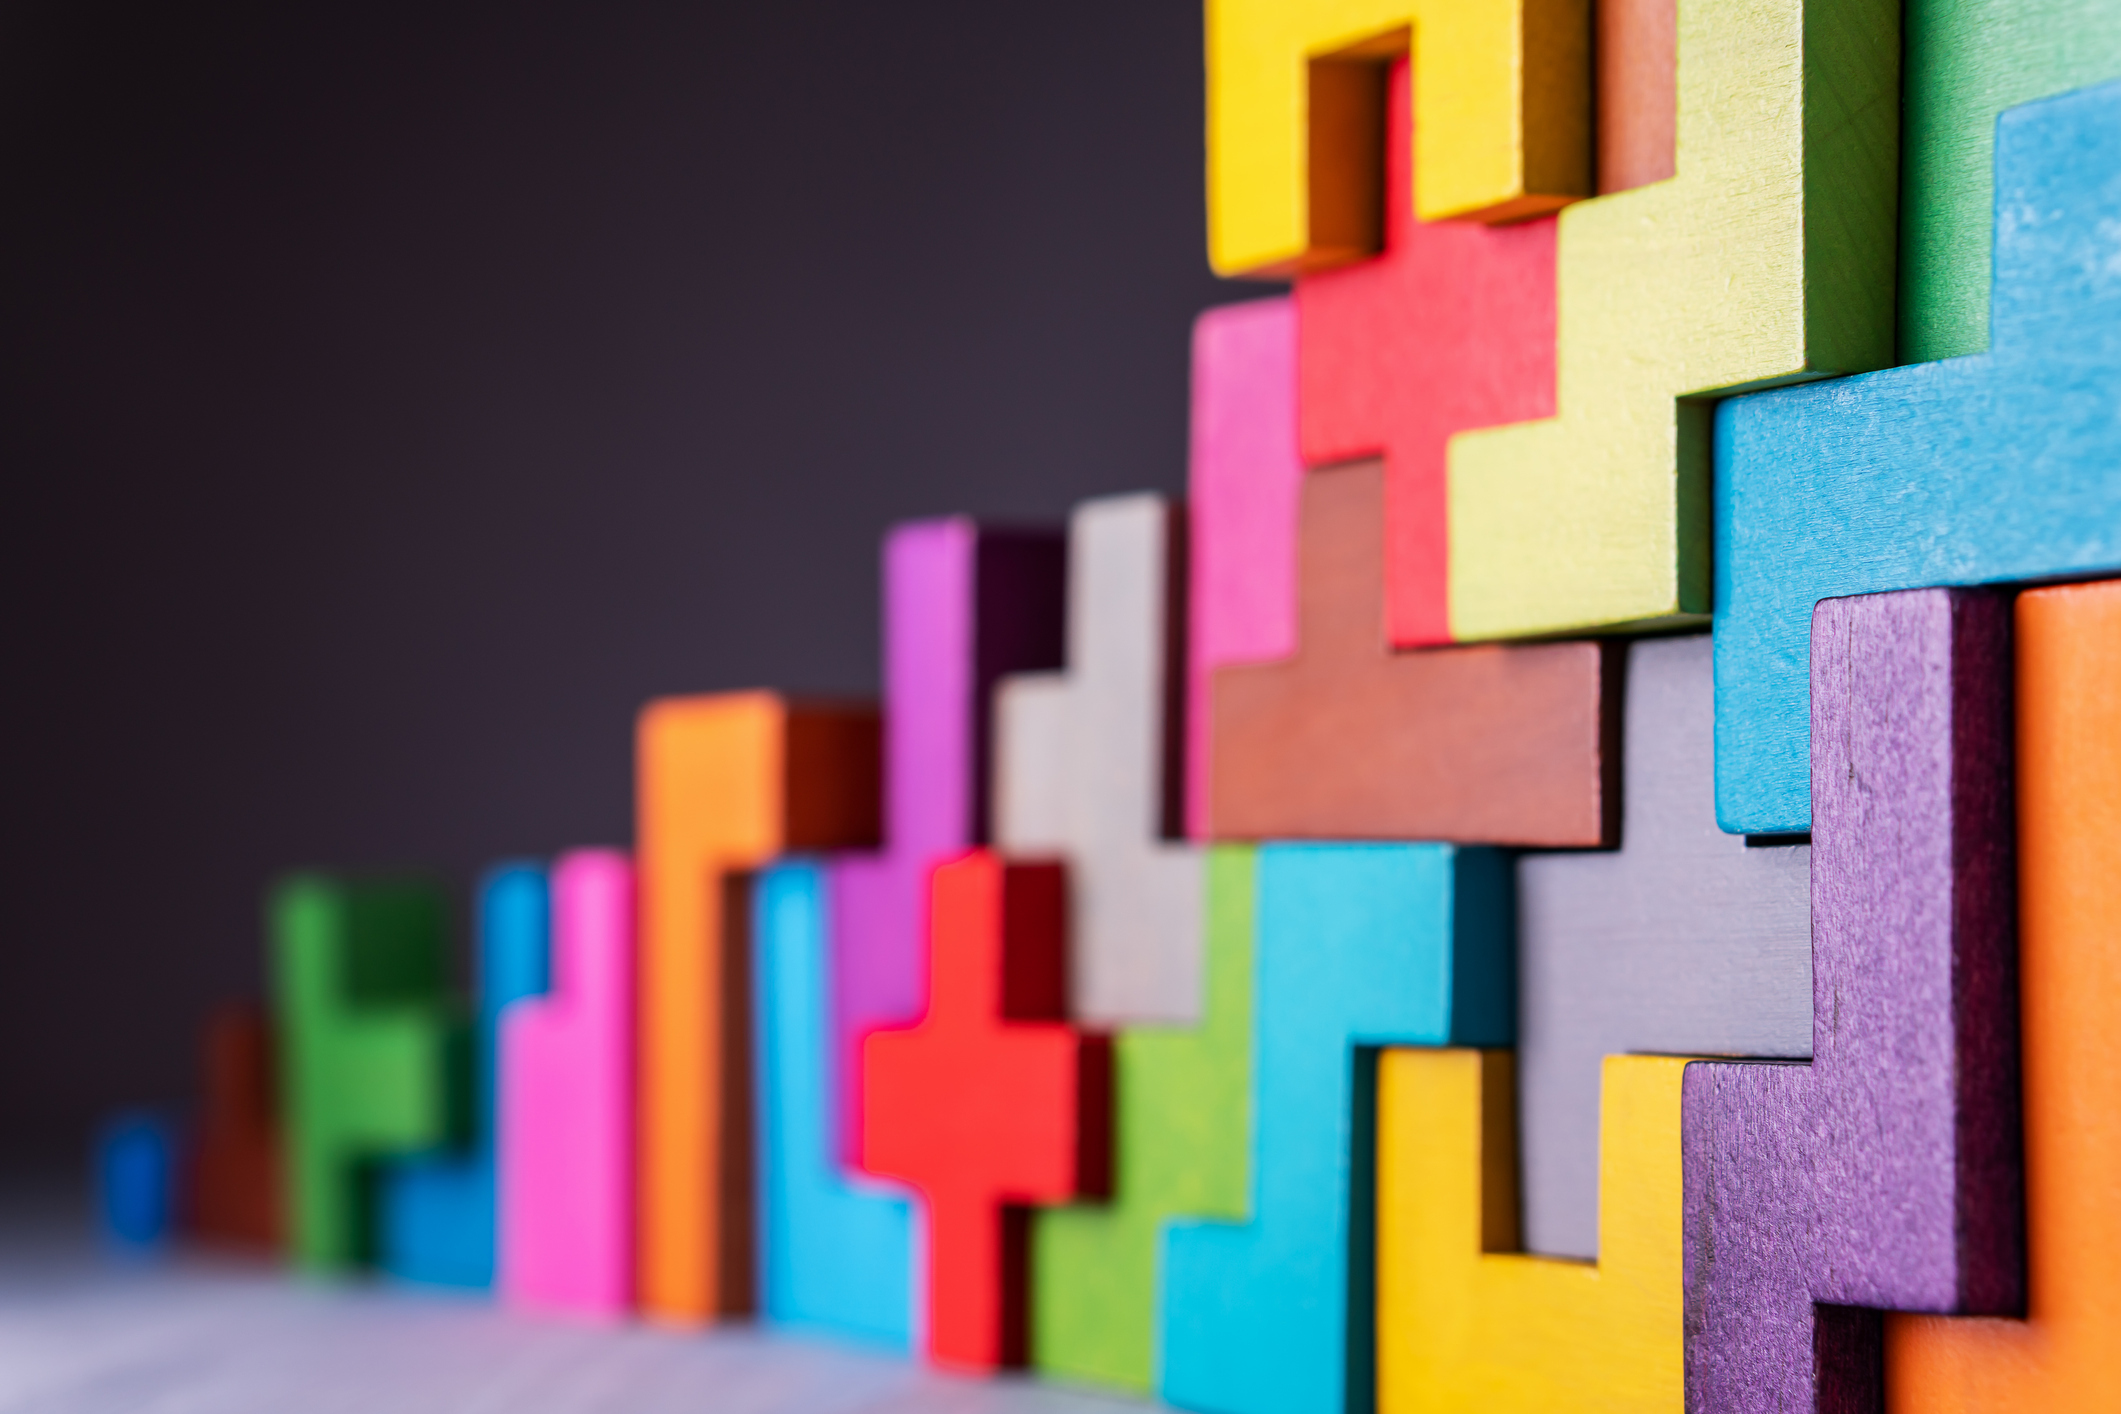 Coaching Webinar - Building Thought Change One Brick at a Time: Lego as an enabler in coaching